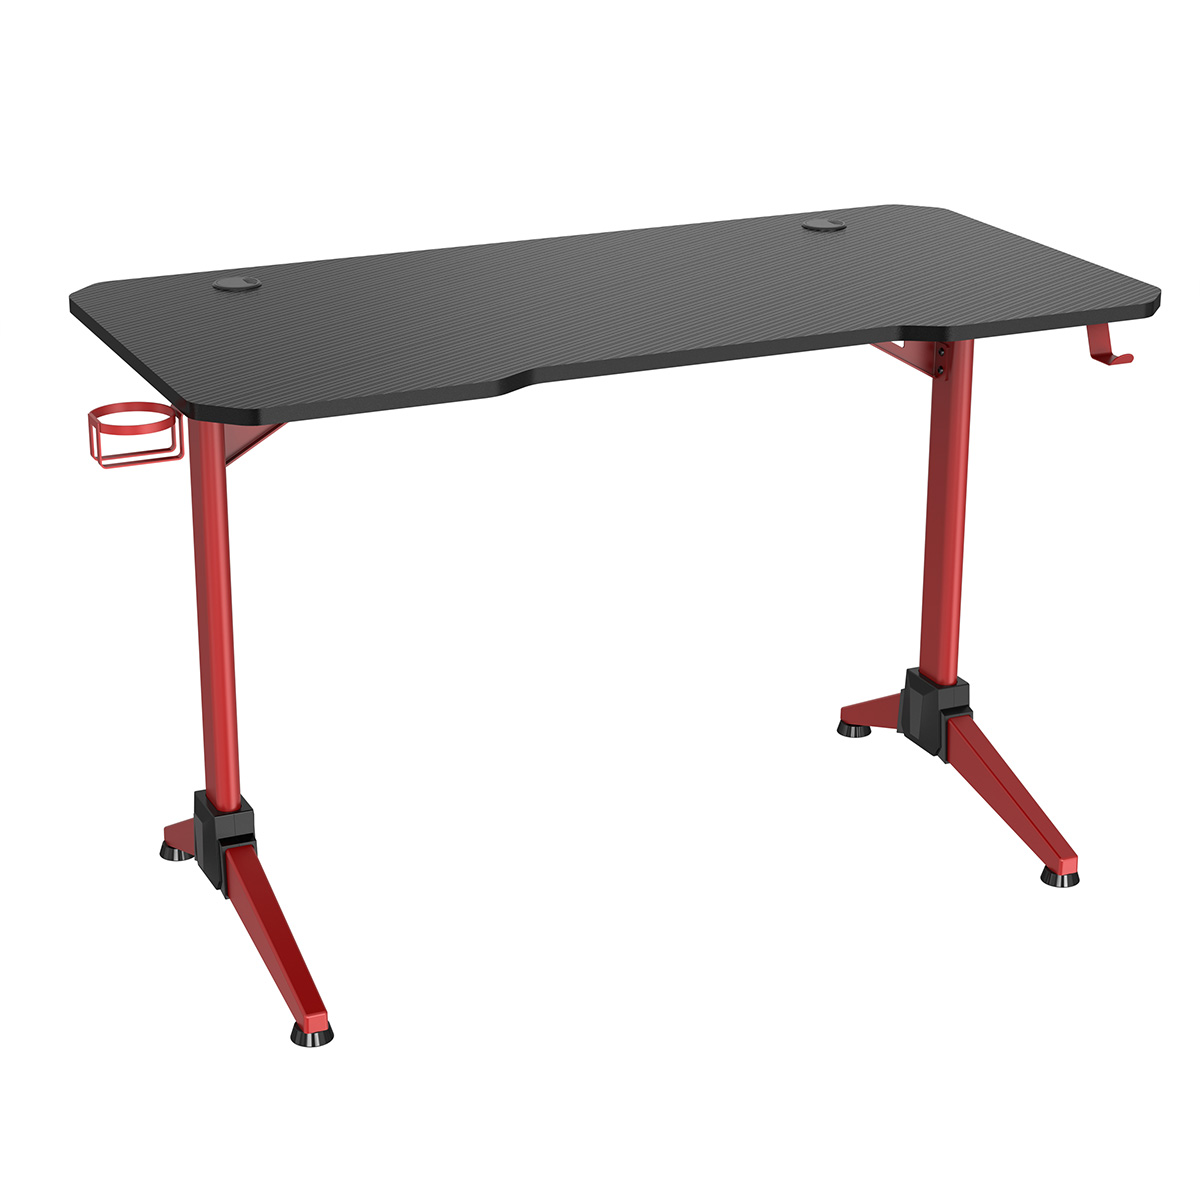 GD120-UR-RD Conquering Gaming Desk (Red)